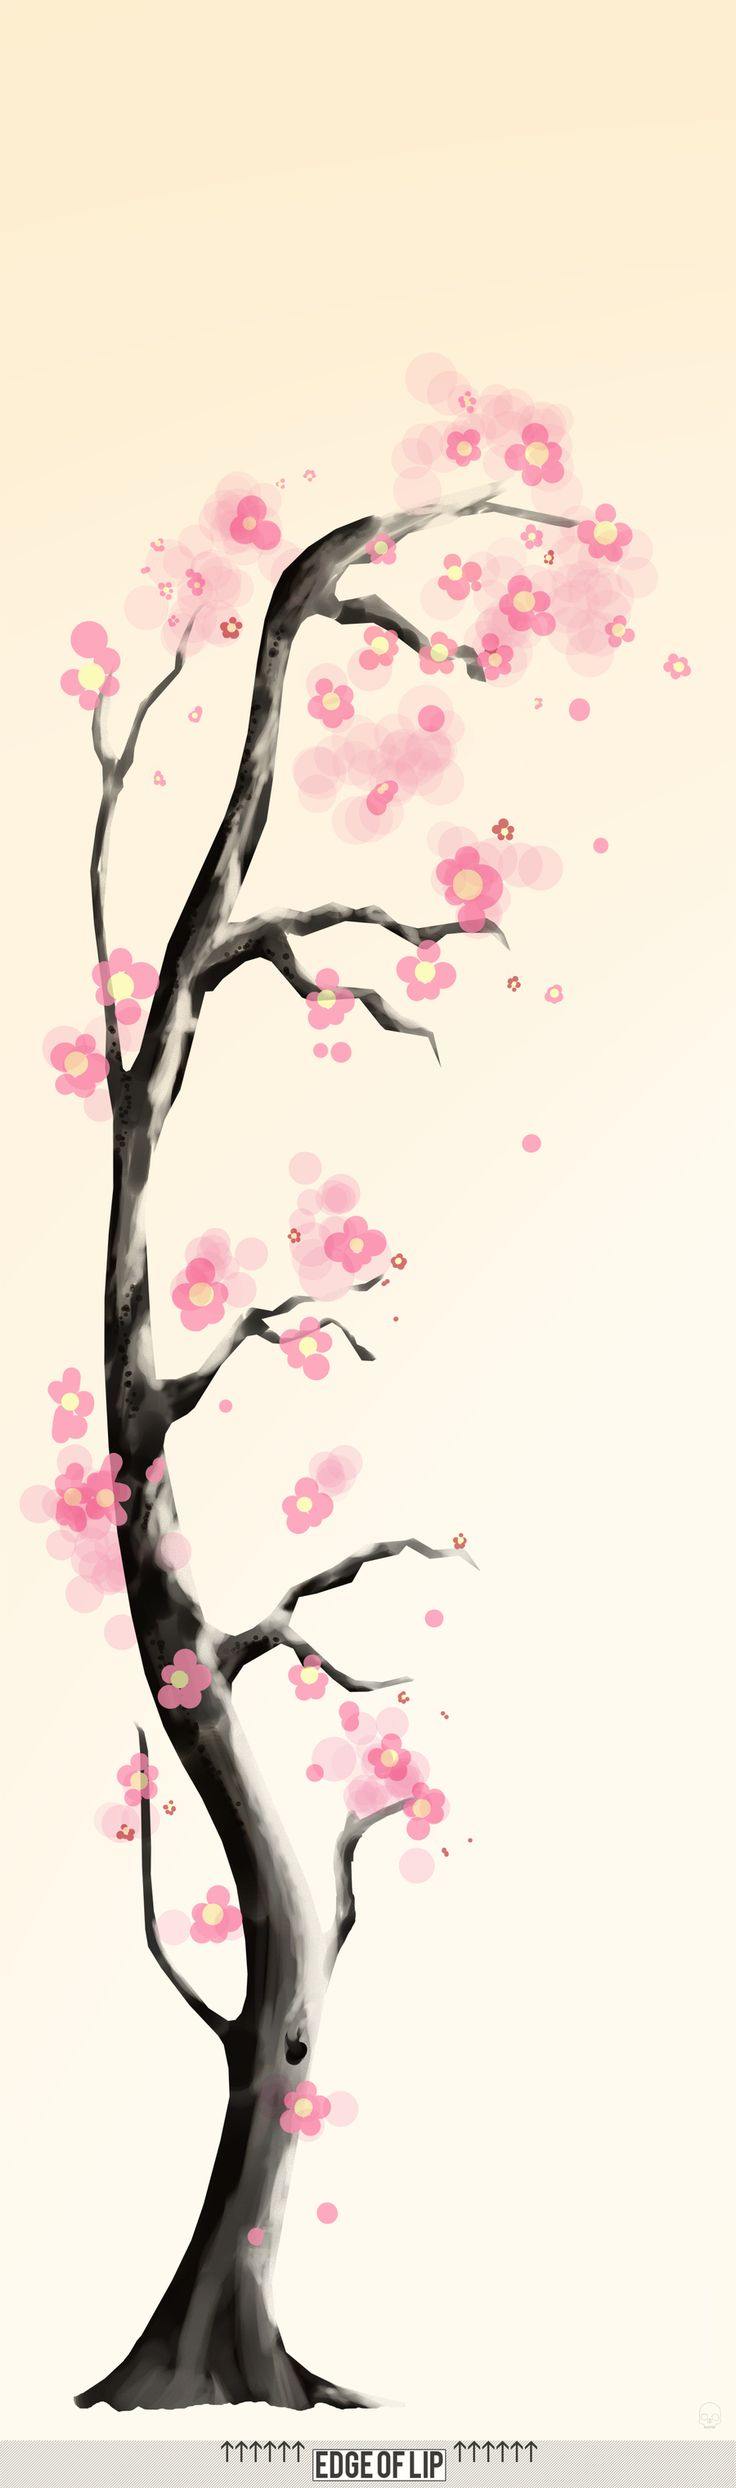 100 best Sakura - The Cherry Blossom Tree images on Pinterest ...